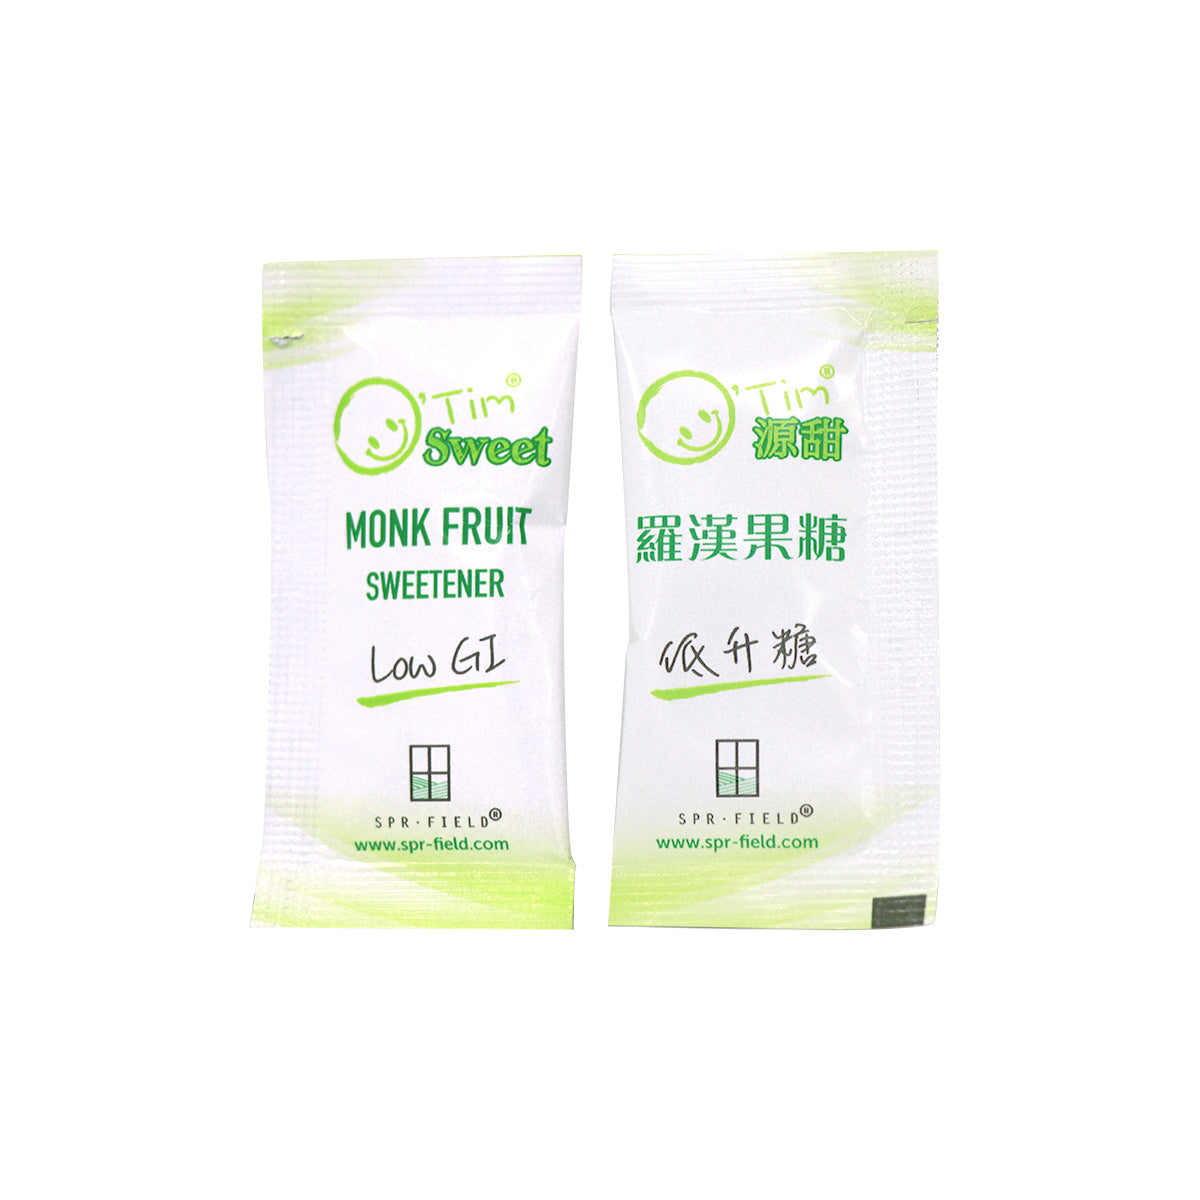 O'Tim Sweet Natural Monk Fruit Classic (3g * 30 sachets)